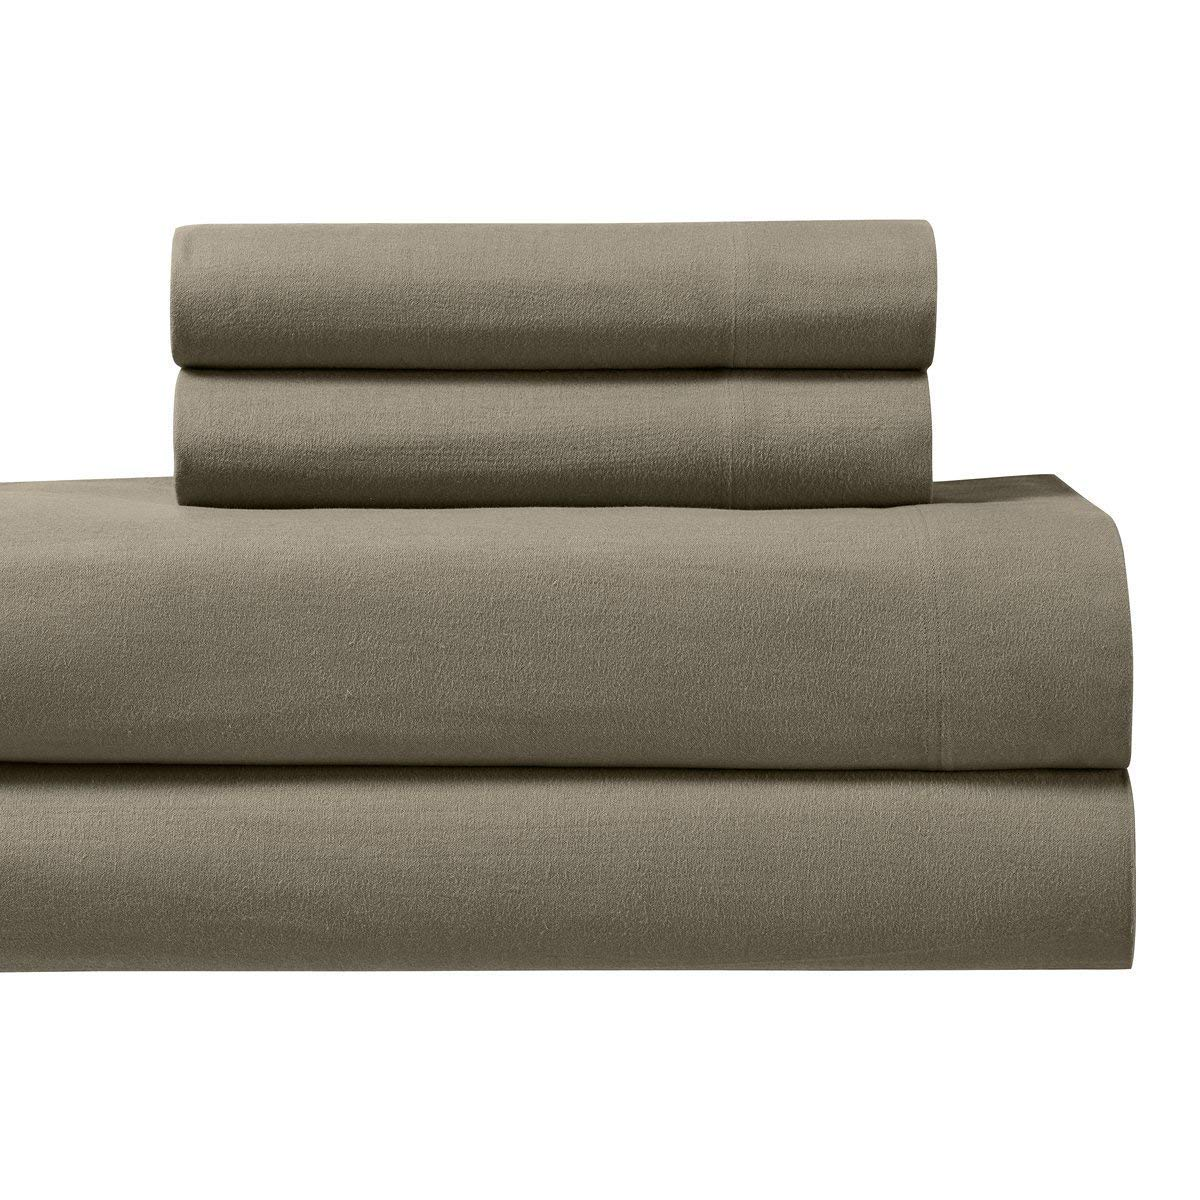 ba38fe809fb9 Get Quotations · Heavyweight Flannel 100% Cotton Sheet Set- King, Taupe,  4PC bed sheets 170